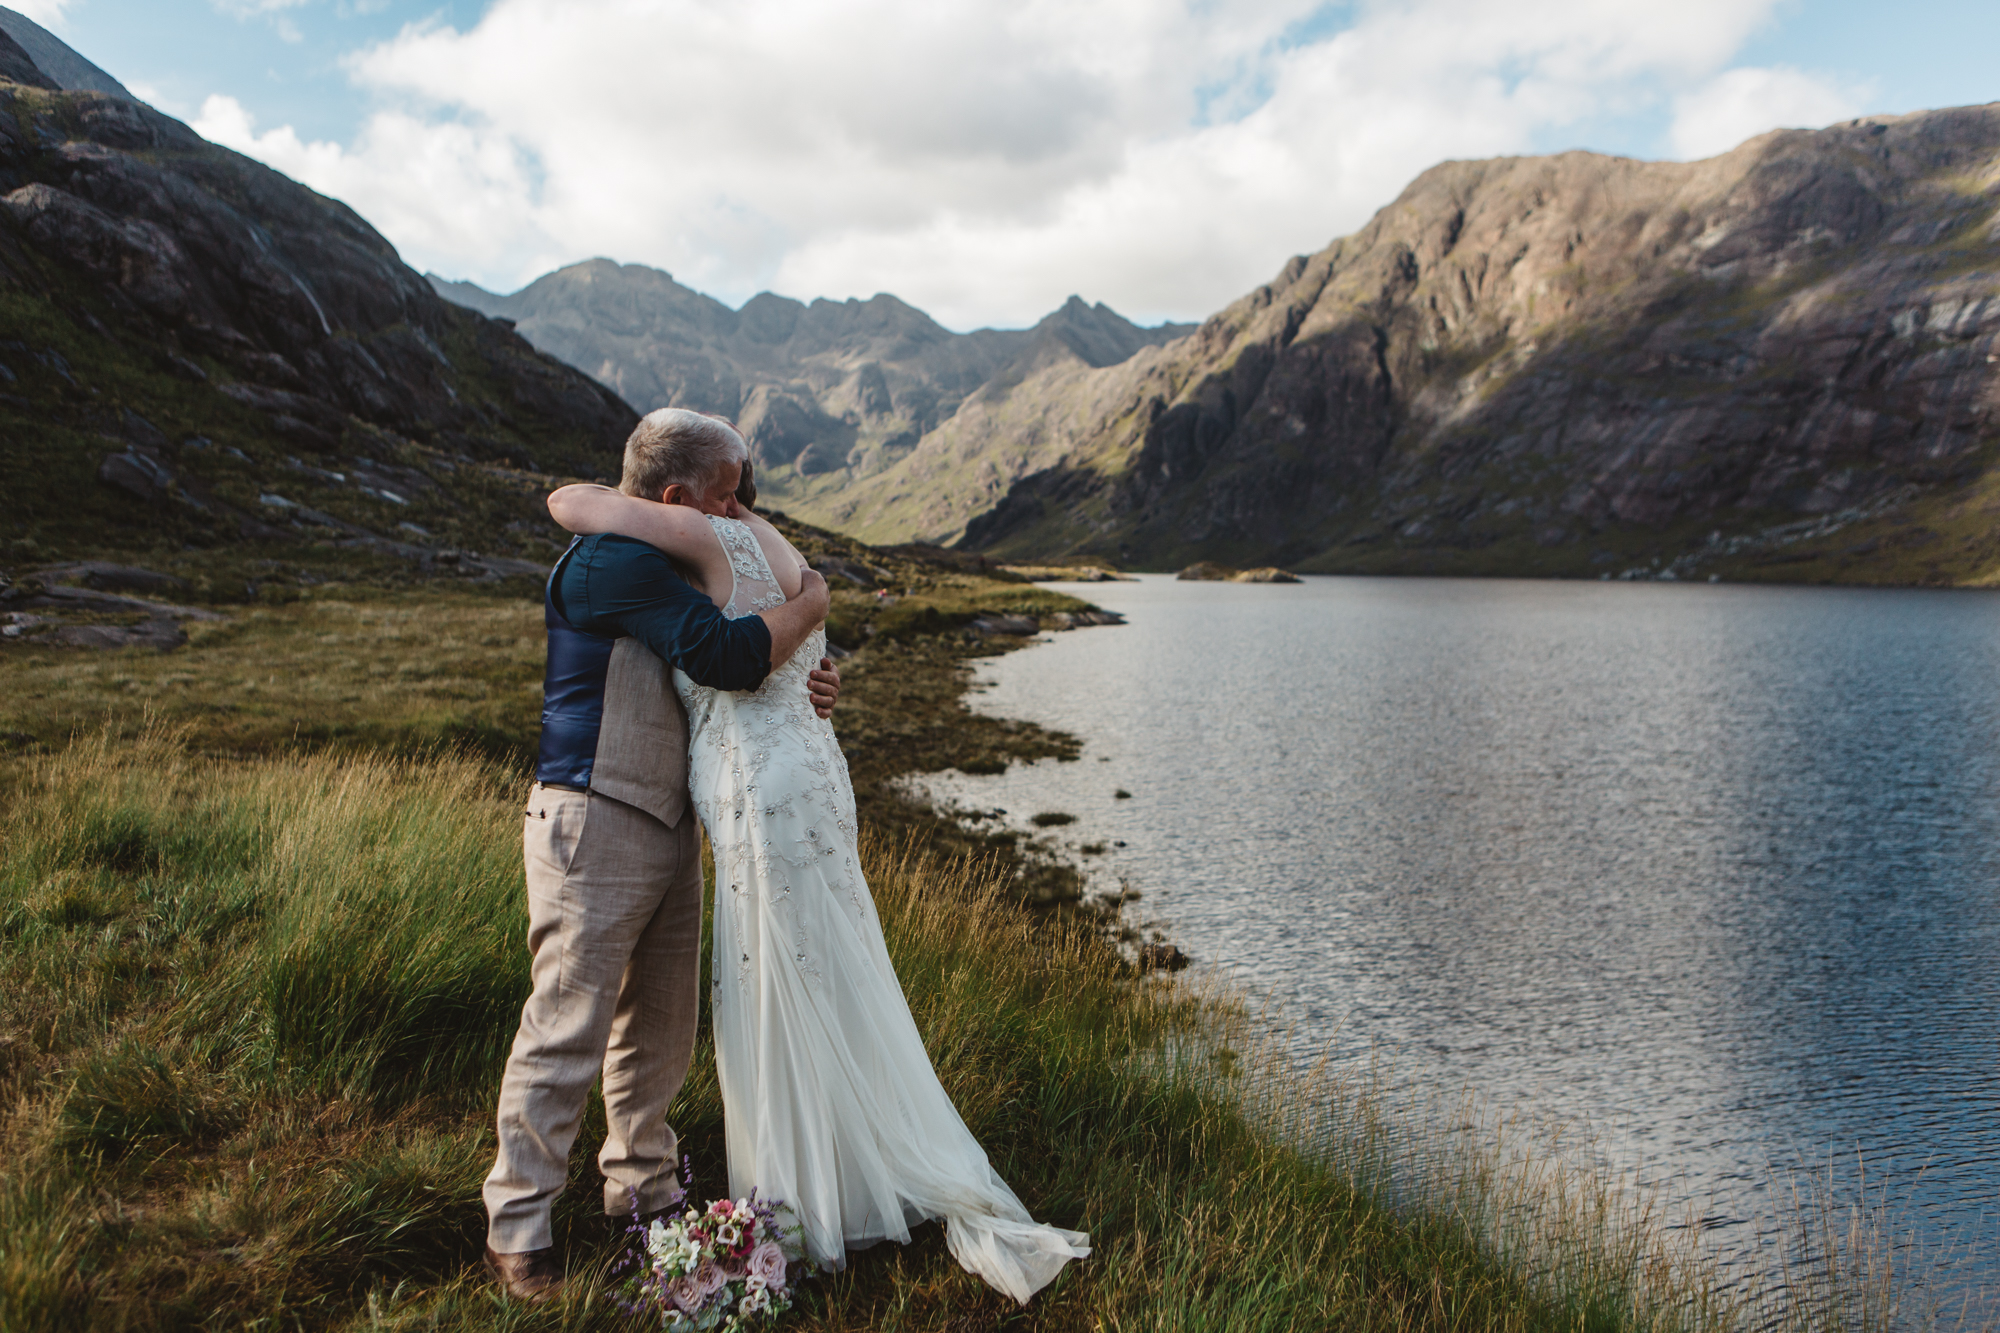 Bride and groom embrace during wedding ceremony loch coruisk